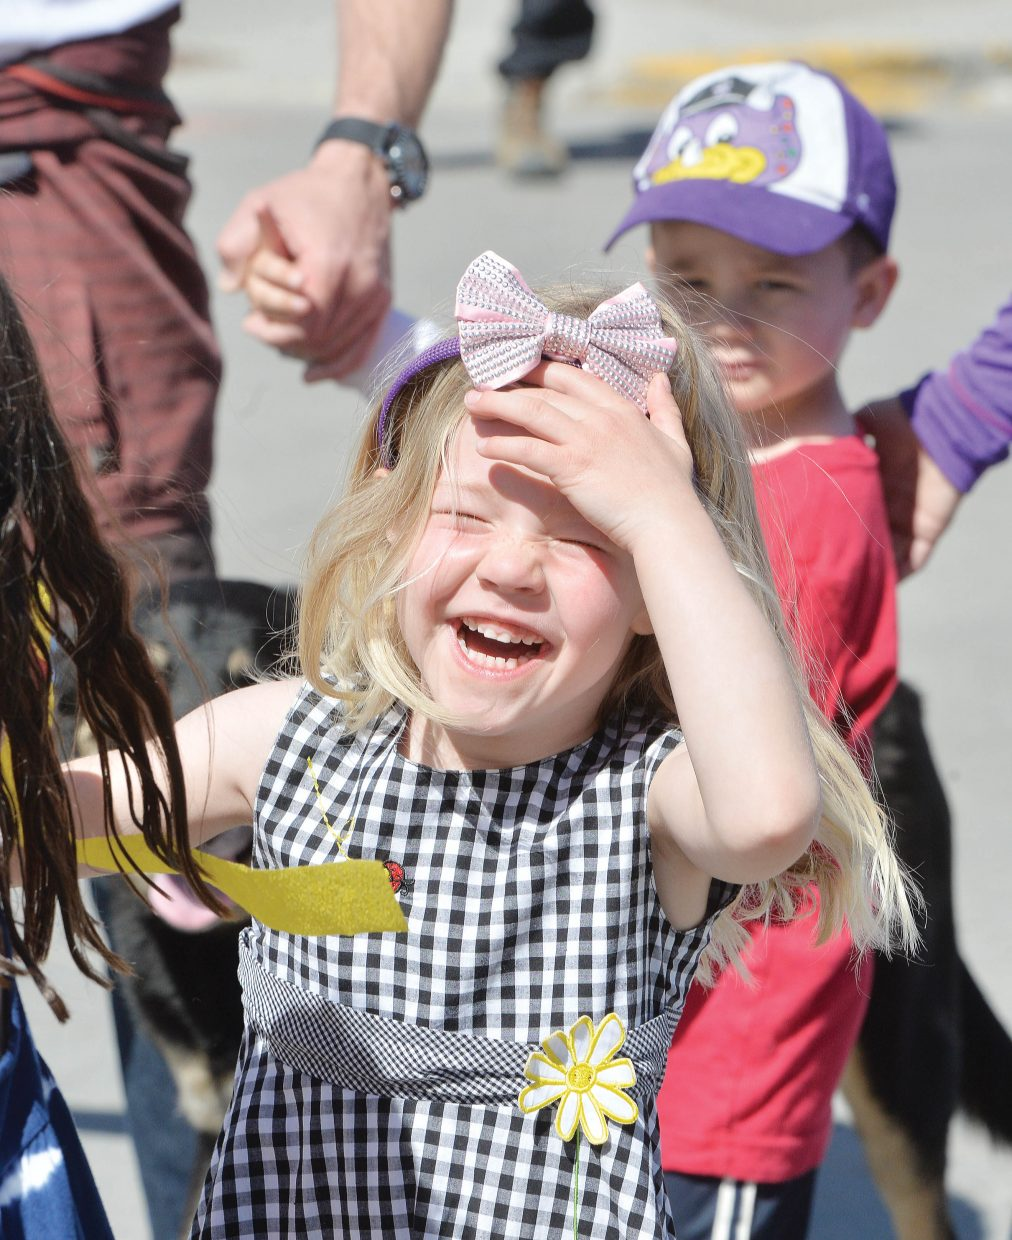 """The First Impressions Children's Parade was all fun, games and smiles for Discovery pre-kindergarten student Annabelle Metcalf. April was the """"Month of the Young Child,"""" and the annual parade was part of the celebration in Steamboat Springs."""